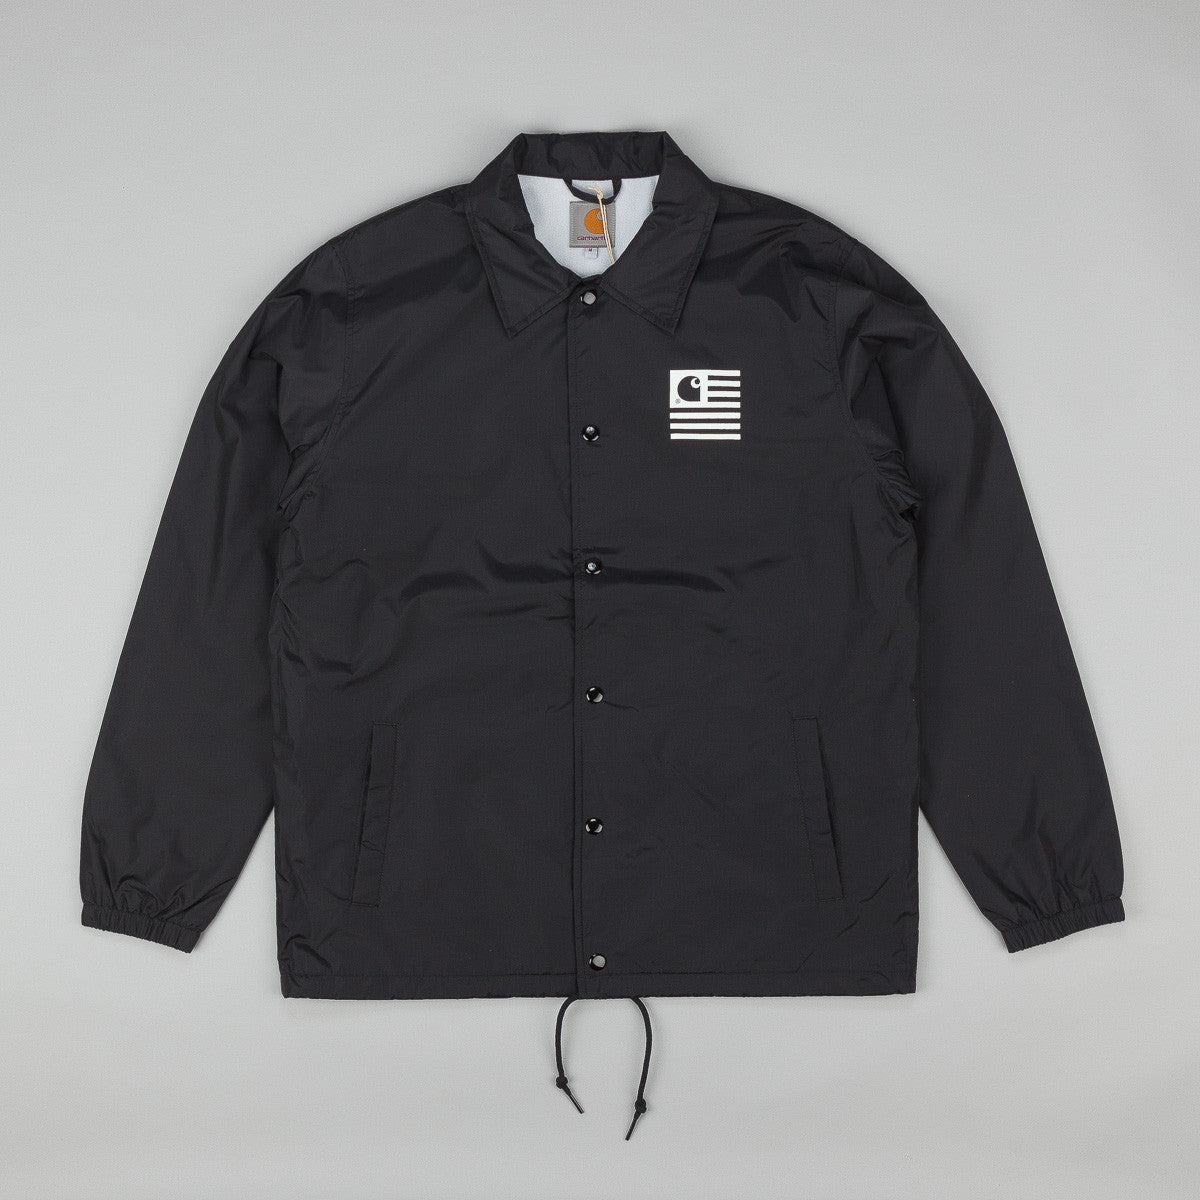 Carhartt State Coach Jacket - Black